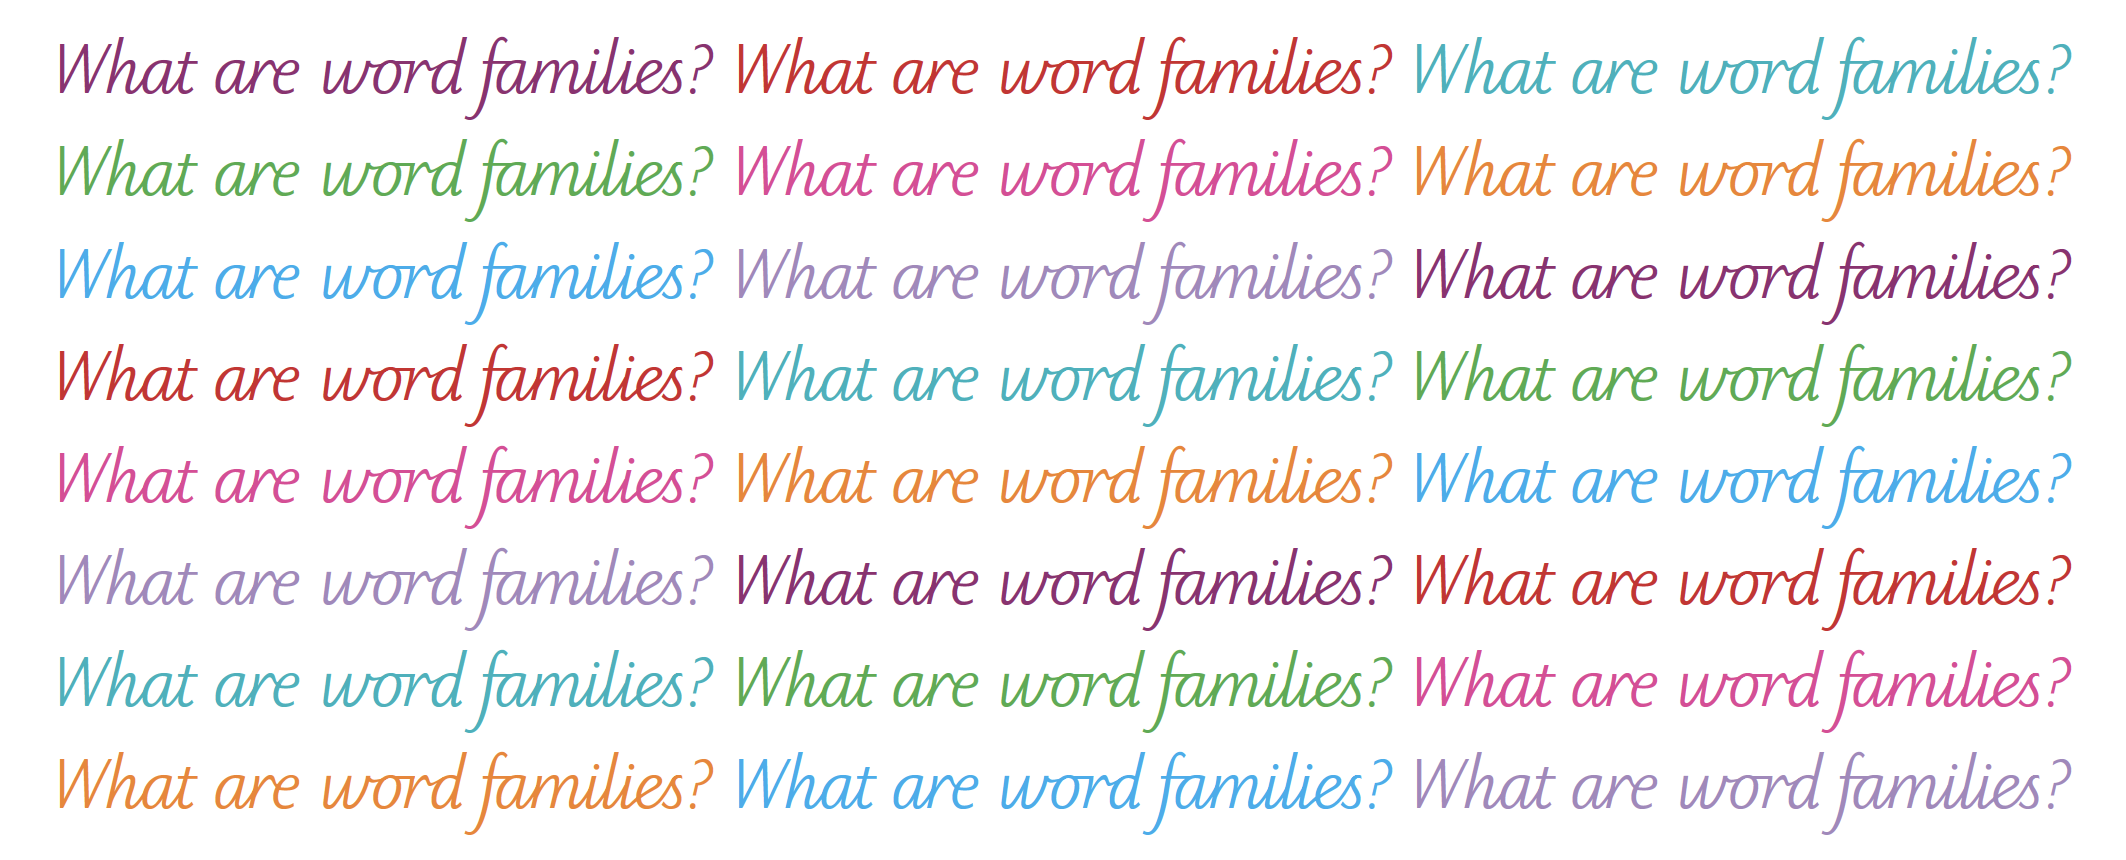 Word families explained for parents | Spelling and word families in ...